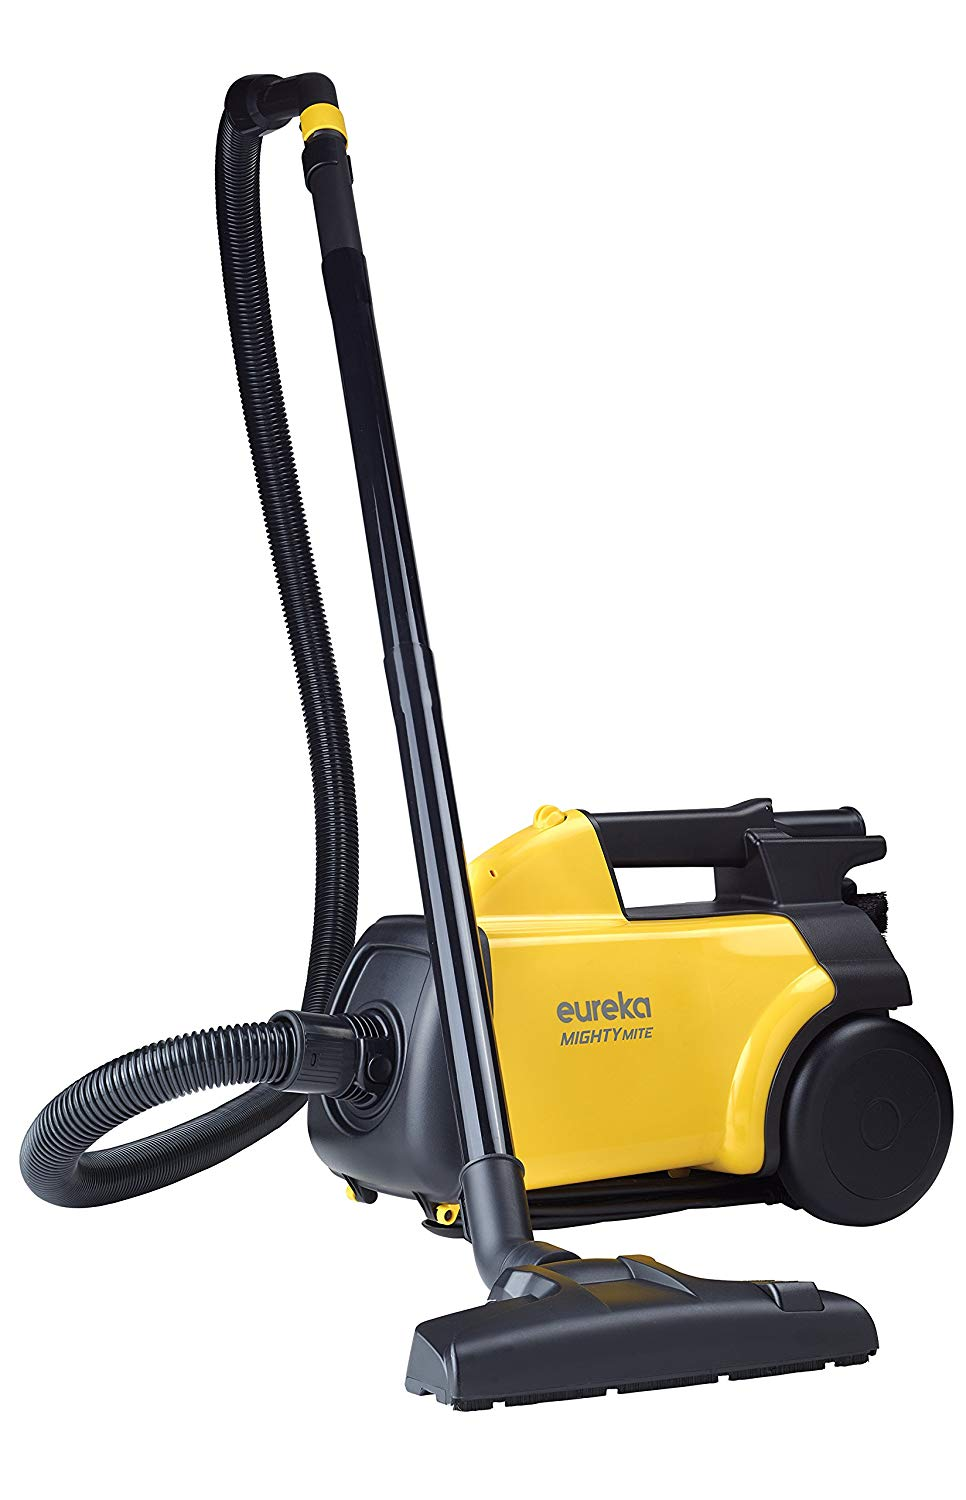 Eureka corded cleaner vacuum cleaner with flexible hose